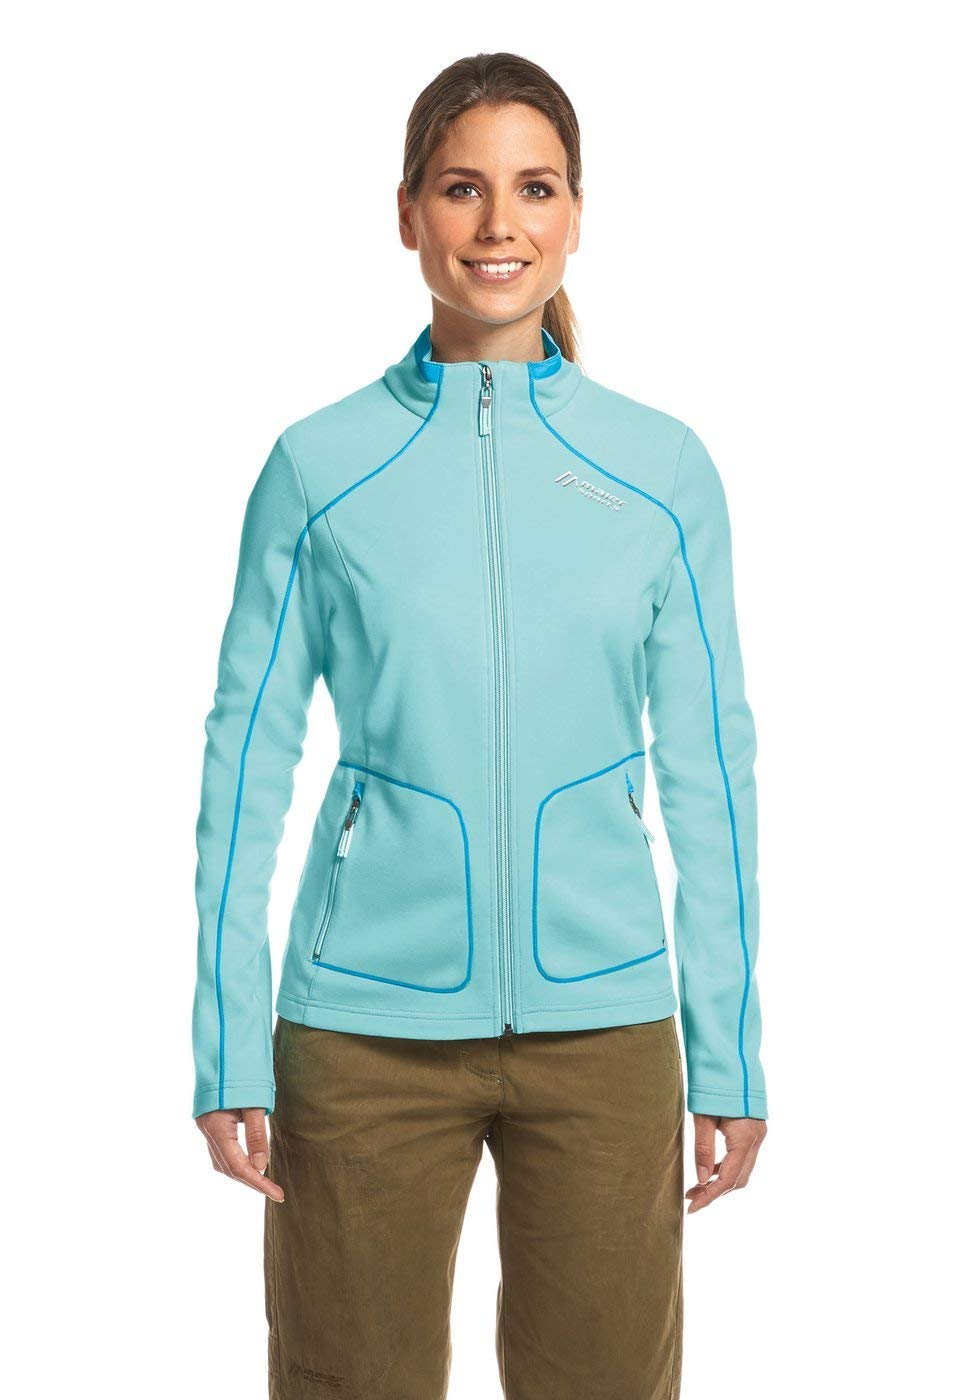 Maier Sports Damen Fleecejacke Colwyn - radiance - 40